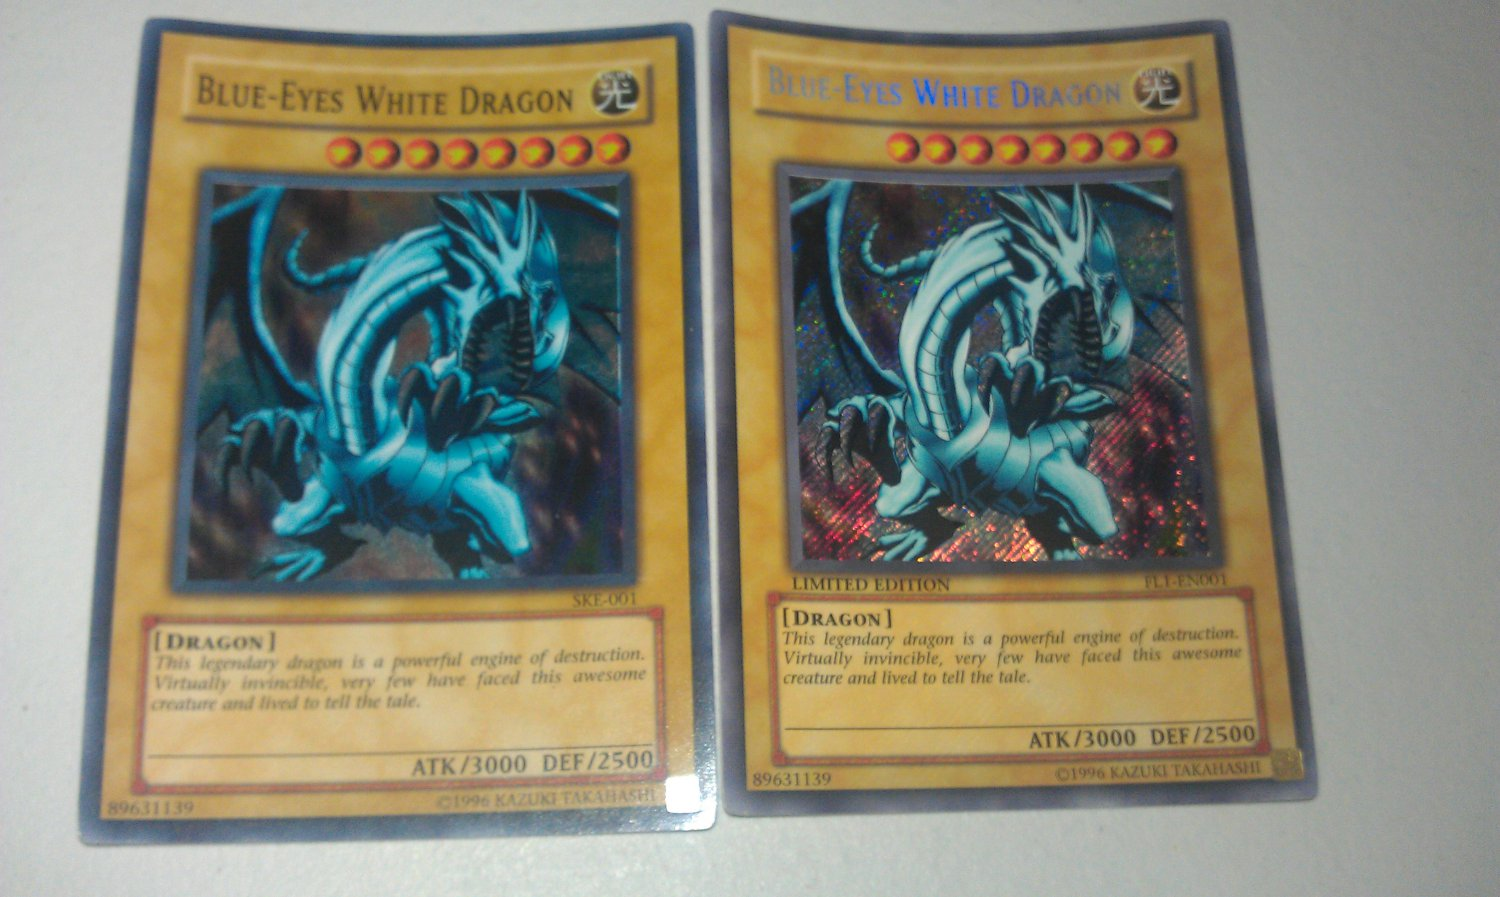 Blue Eyes White Dragon Limited Edition y Regular Brillante!